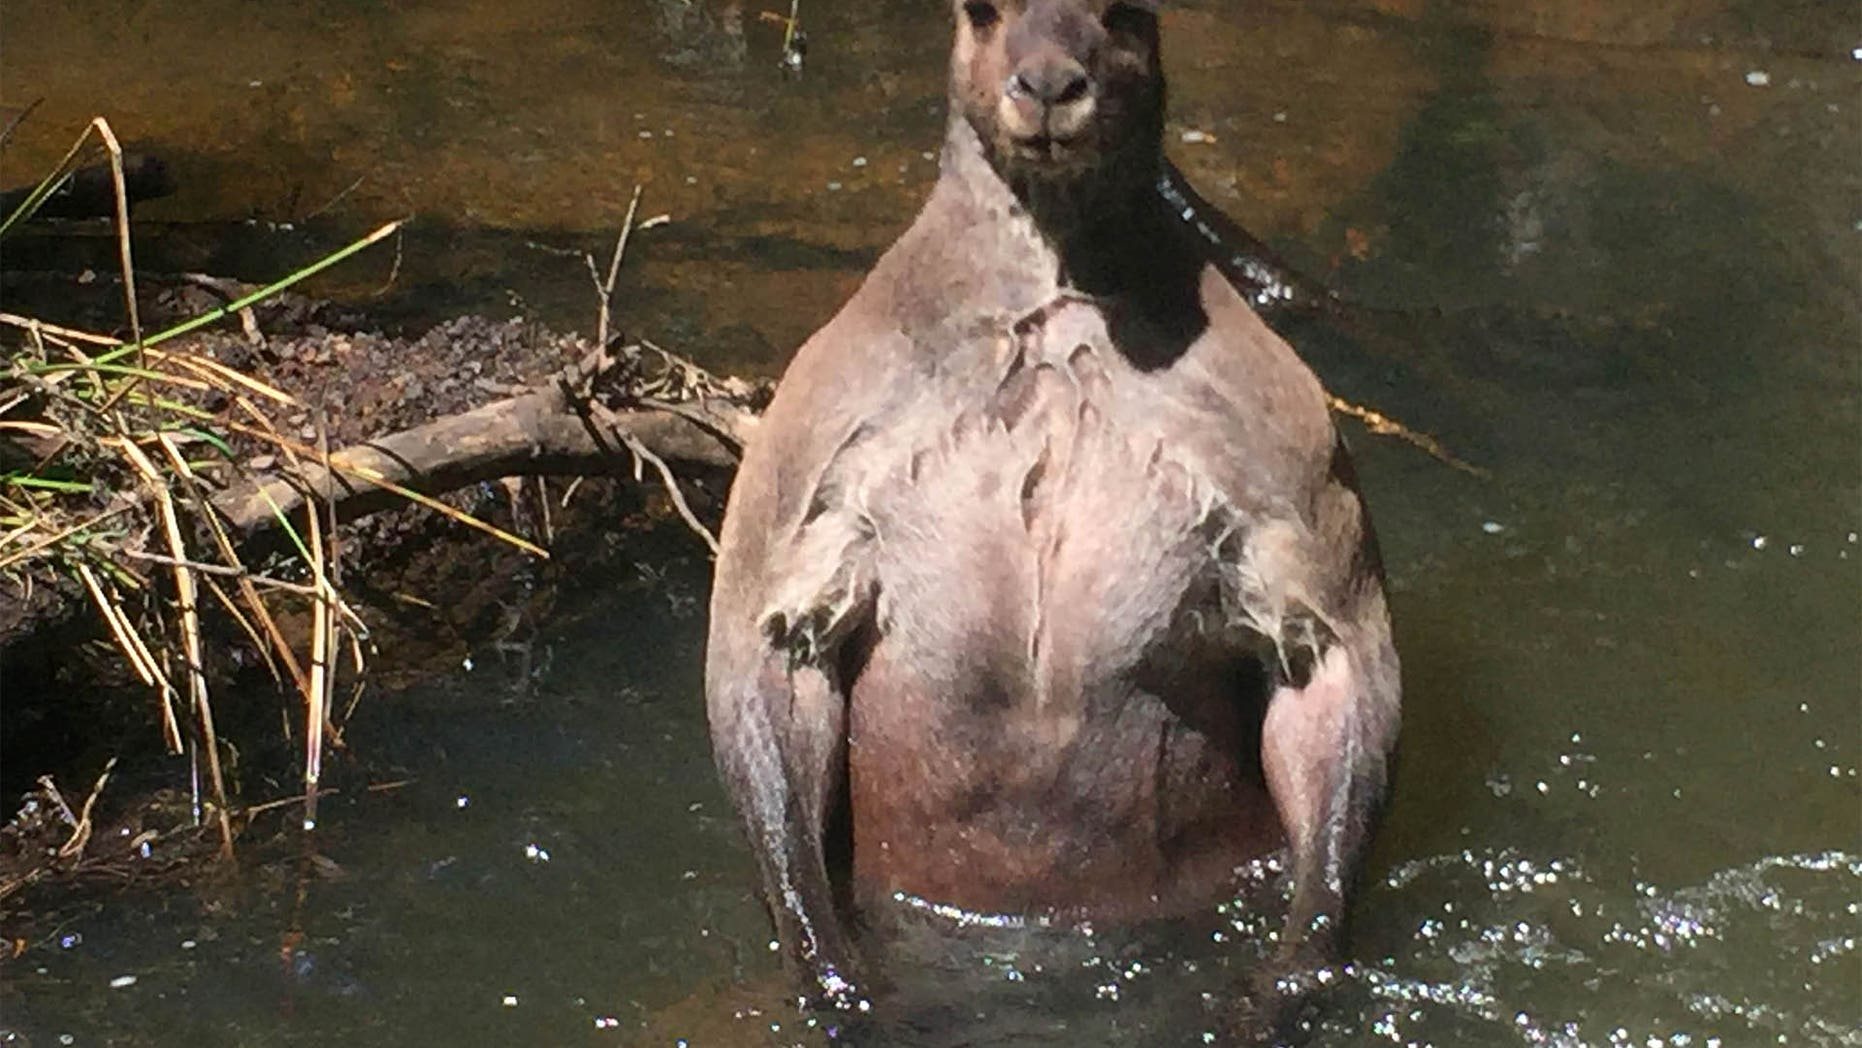 PIC FROM Jackson Vincent / Caters News - (PICTURED:Kangaroo in the creek) - This is the bizarre moment a gardener spotted a threatening bodybuilder 16st kangaroo bathing its bulging biceps in an Australian creek. Jackson Vincent snapped these astounding photographs of the huge roo tensing its rippling muscles in Boodjidup Creek in Margaret River, Western Australia, yesterday (TUES). The 27-year-old couldnt believe his eyes when he clocked the mammoth 6ft 5in mammal standing in the water  and feared it could be preparing to attack beloved dog Dharma. SEE CATERS COPY